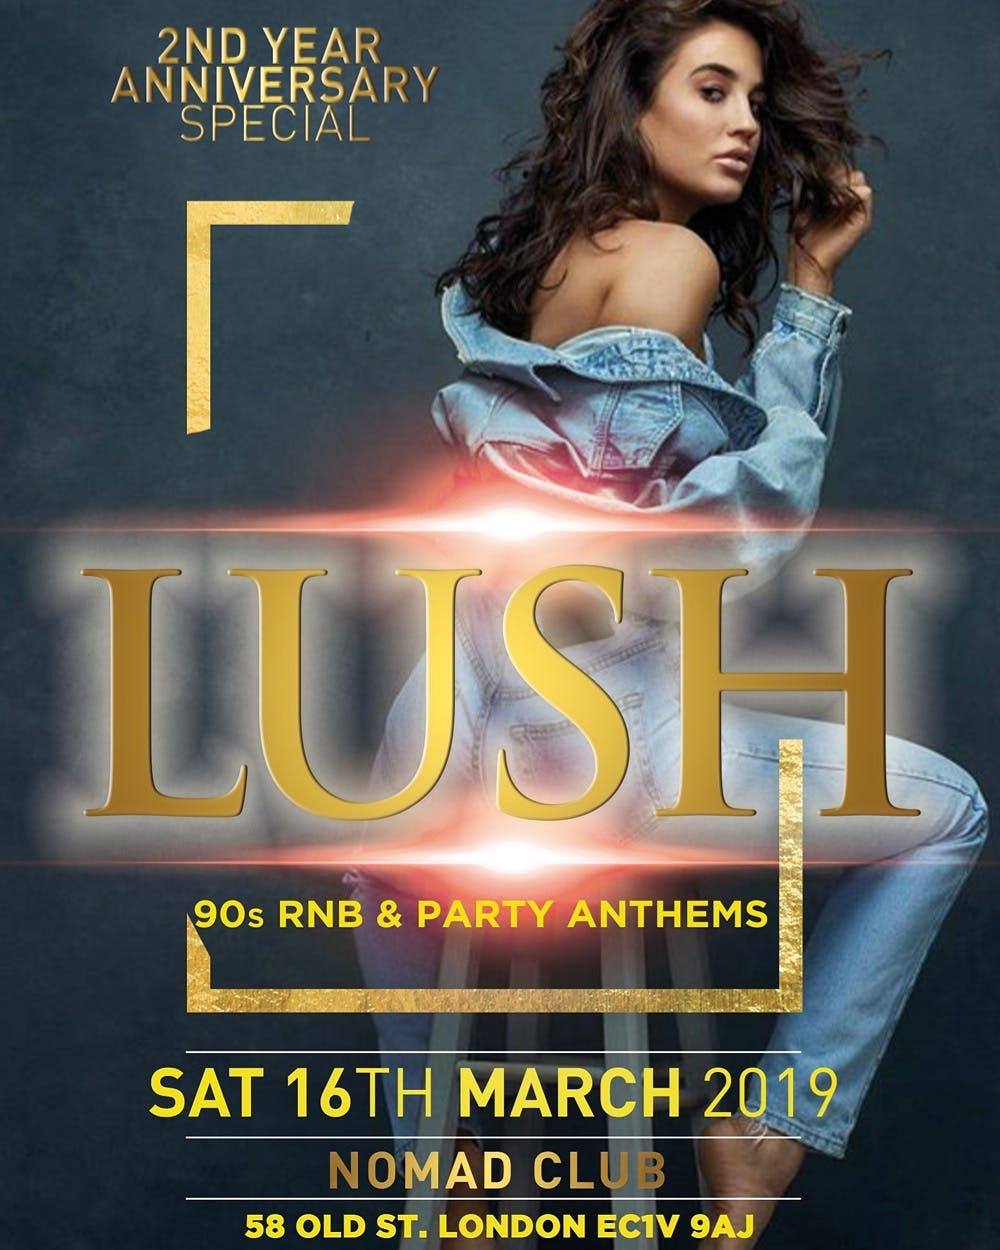 Lush 90s RnB & Party Anthems